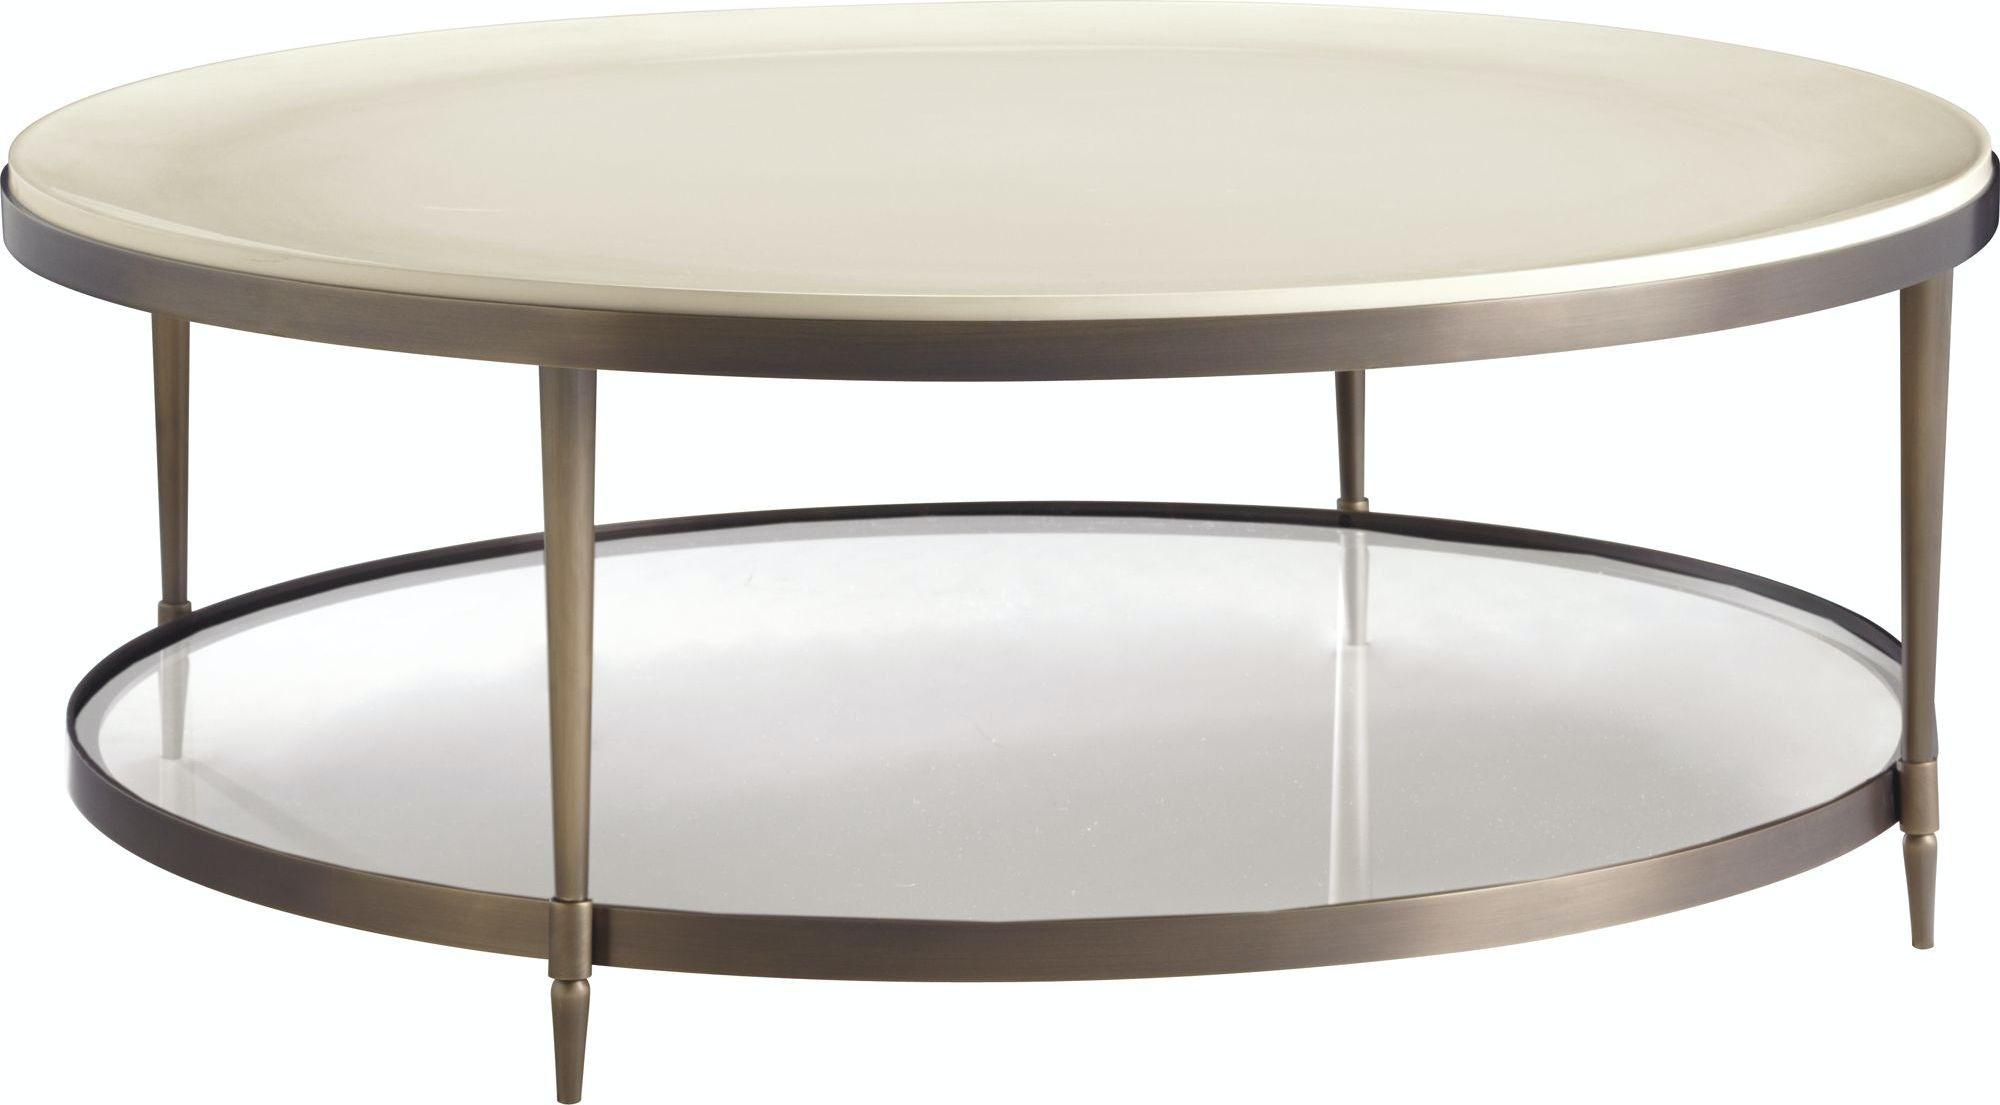 Baker Furniture 3651 Living Room Barbara Barry Oberon Cocktail Table